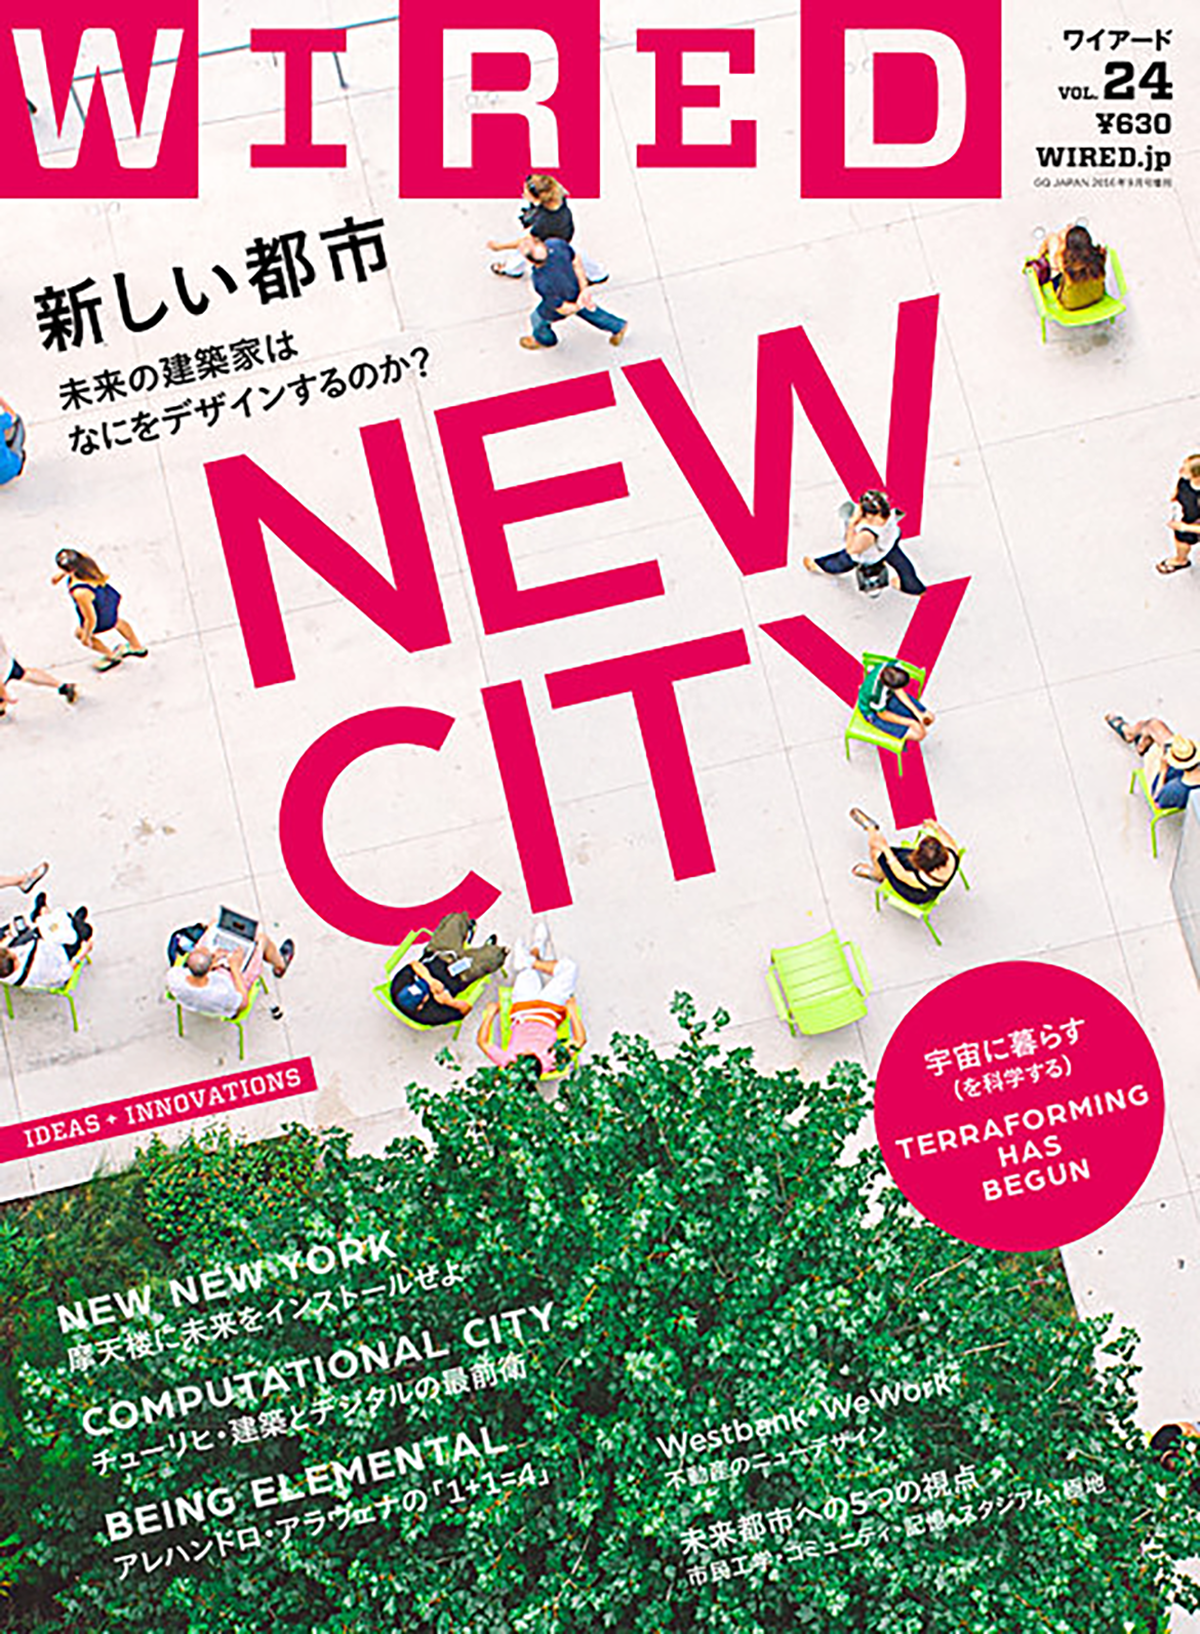 WIRED Vol.24 、NEW CITY 新しい都市